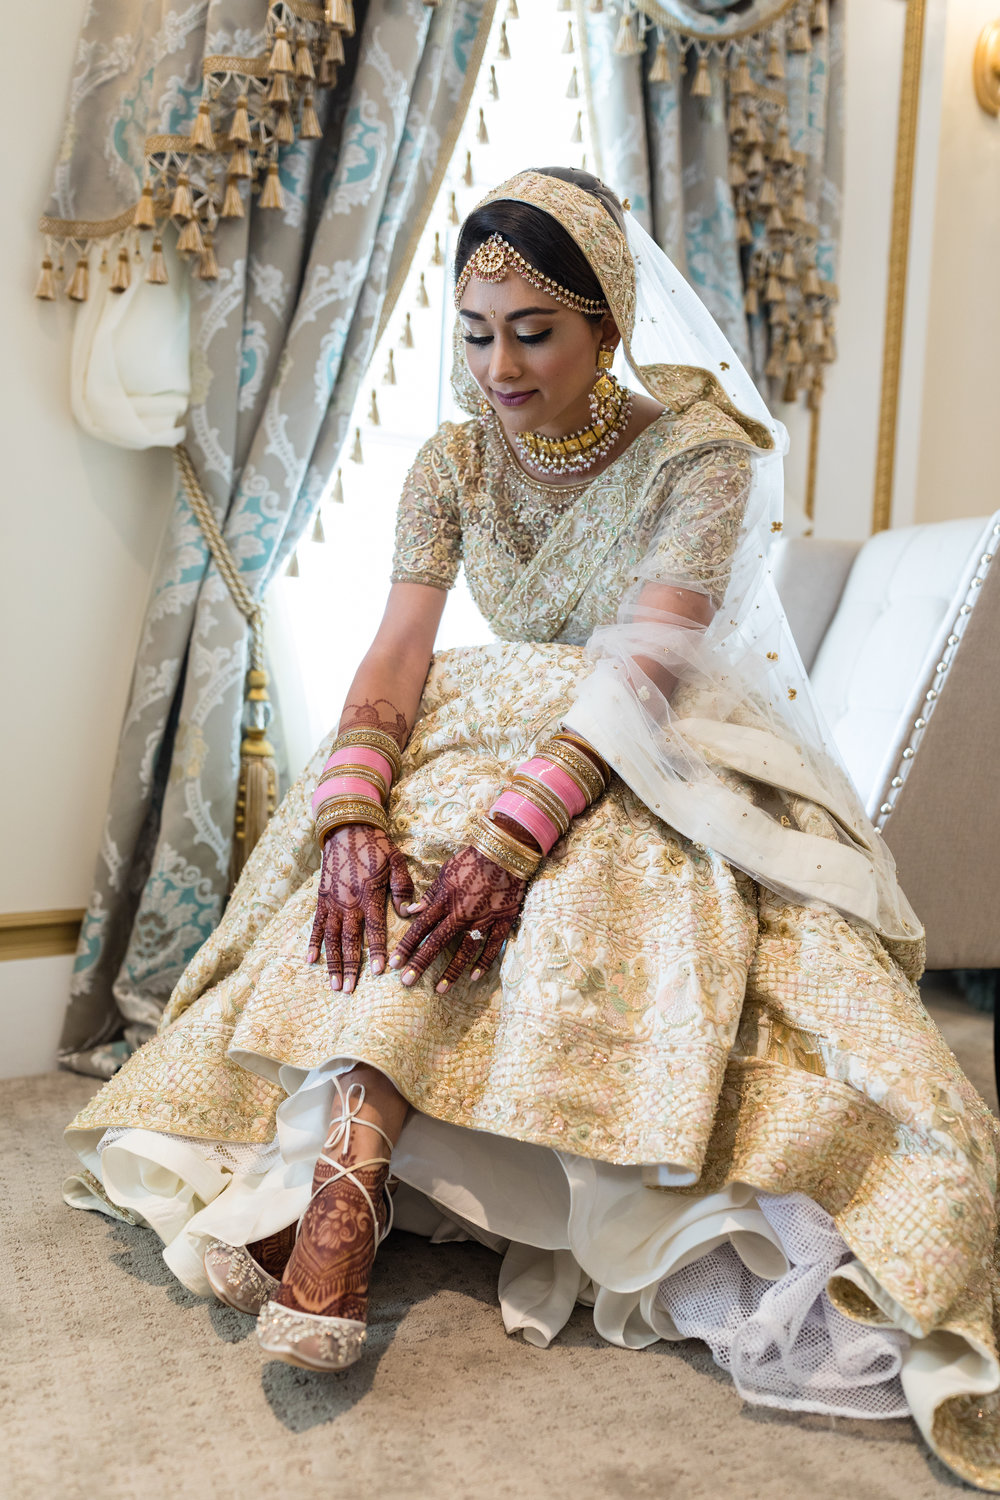 INDIAN WEDDING BRIDE FULLSIZE.jpg